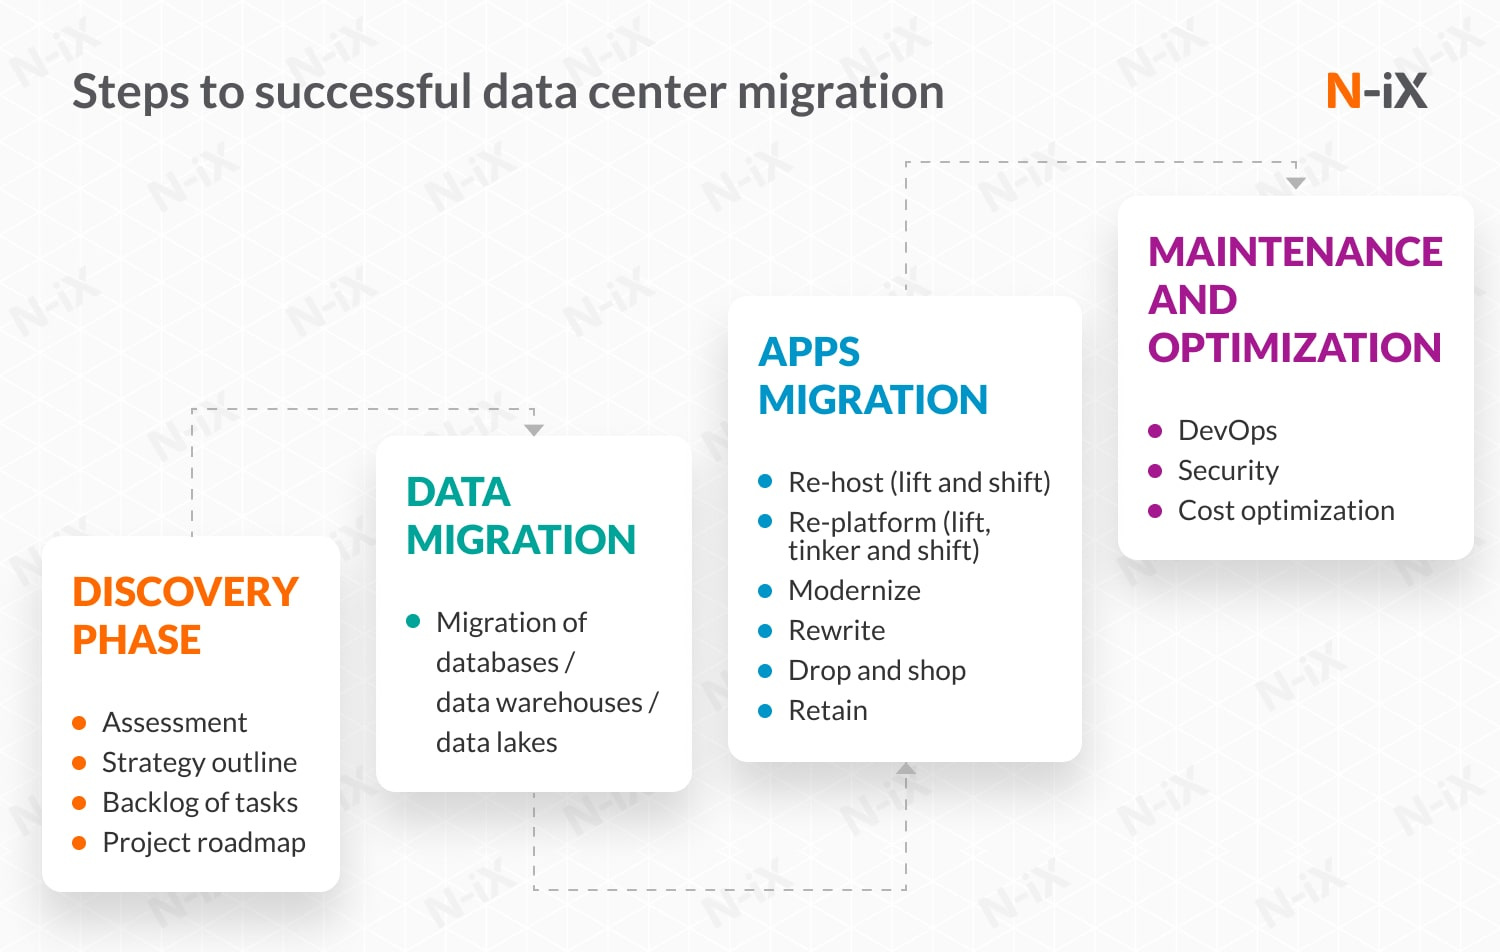 4 steps to successful data center migration